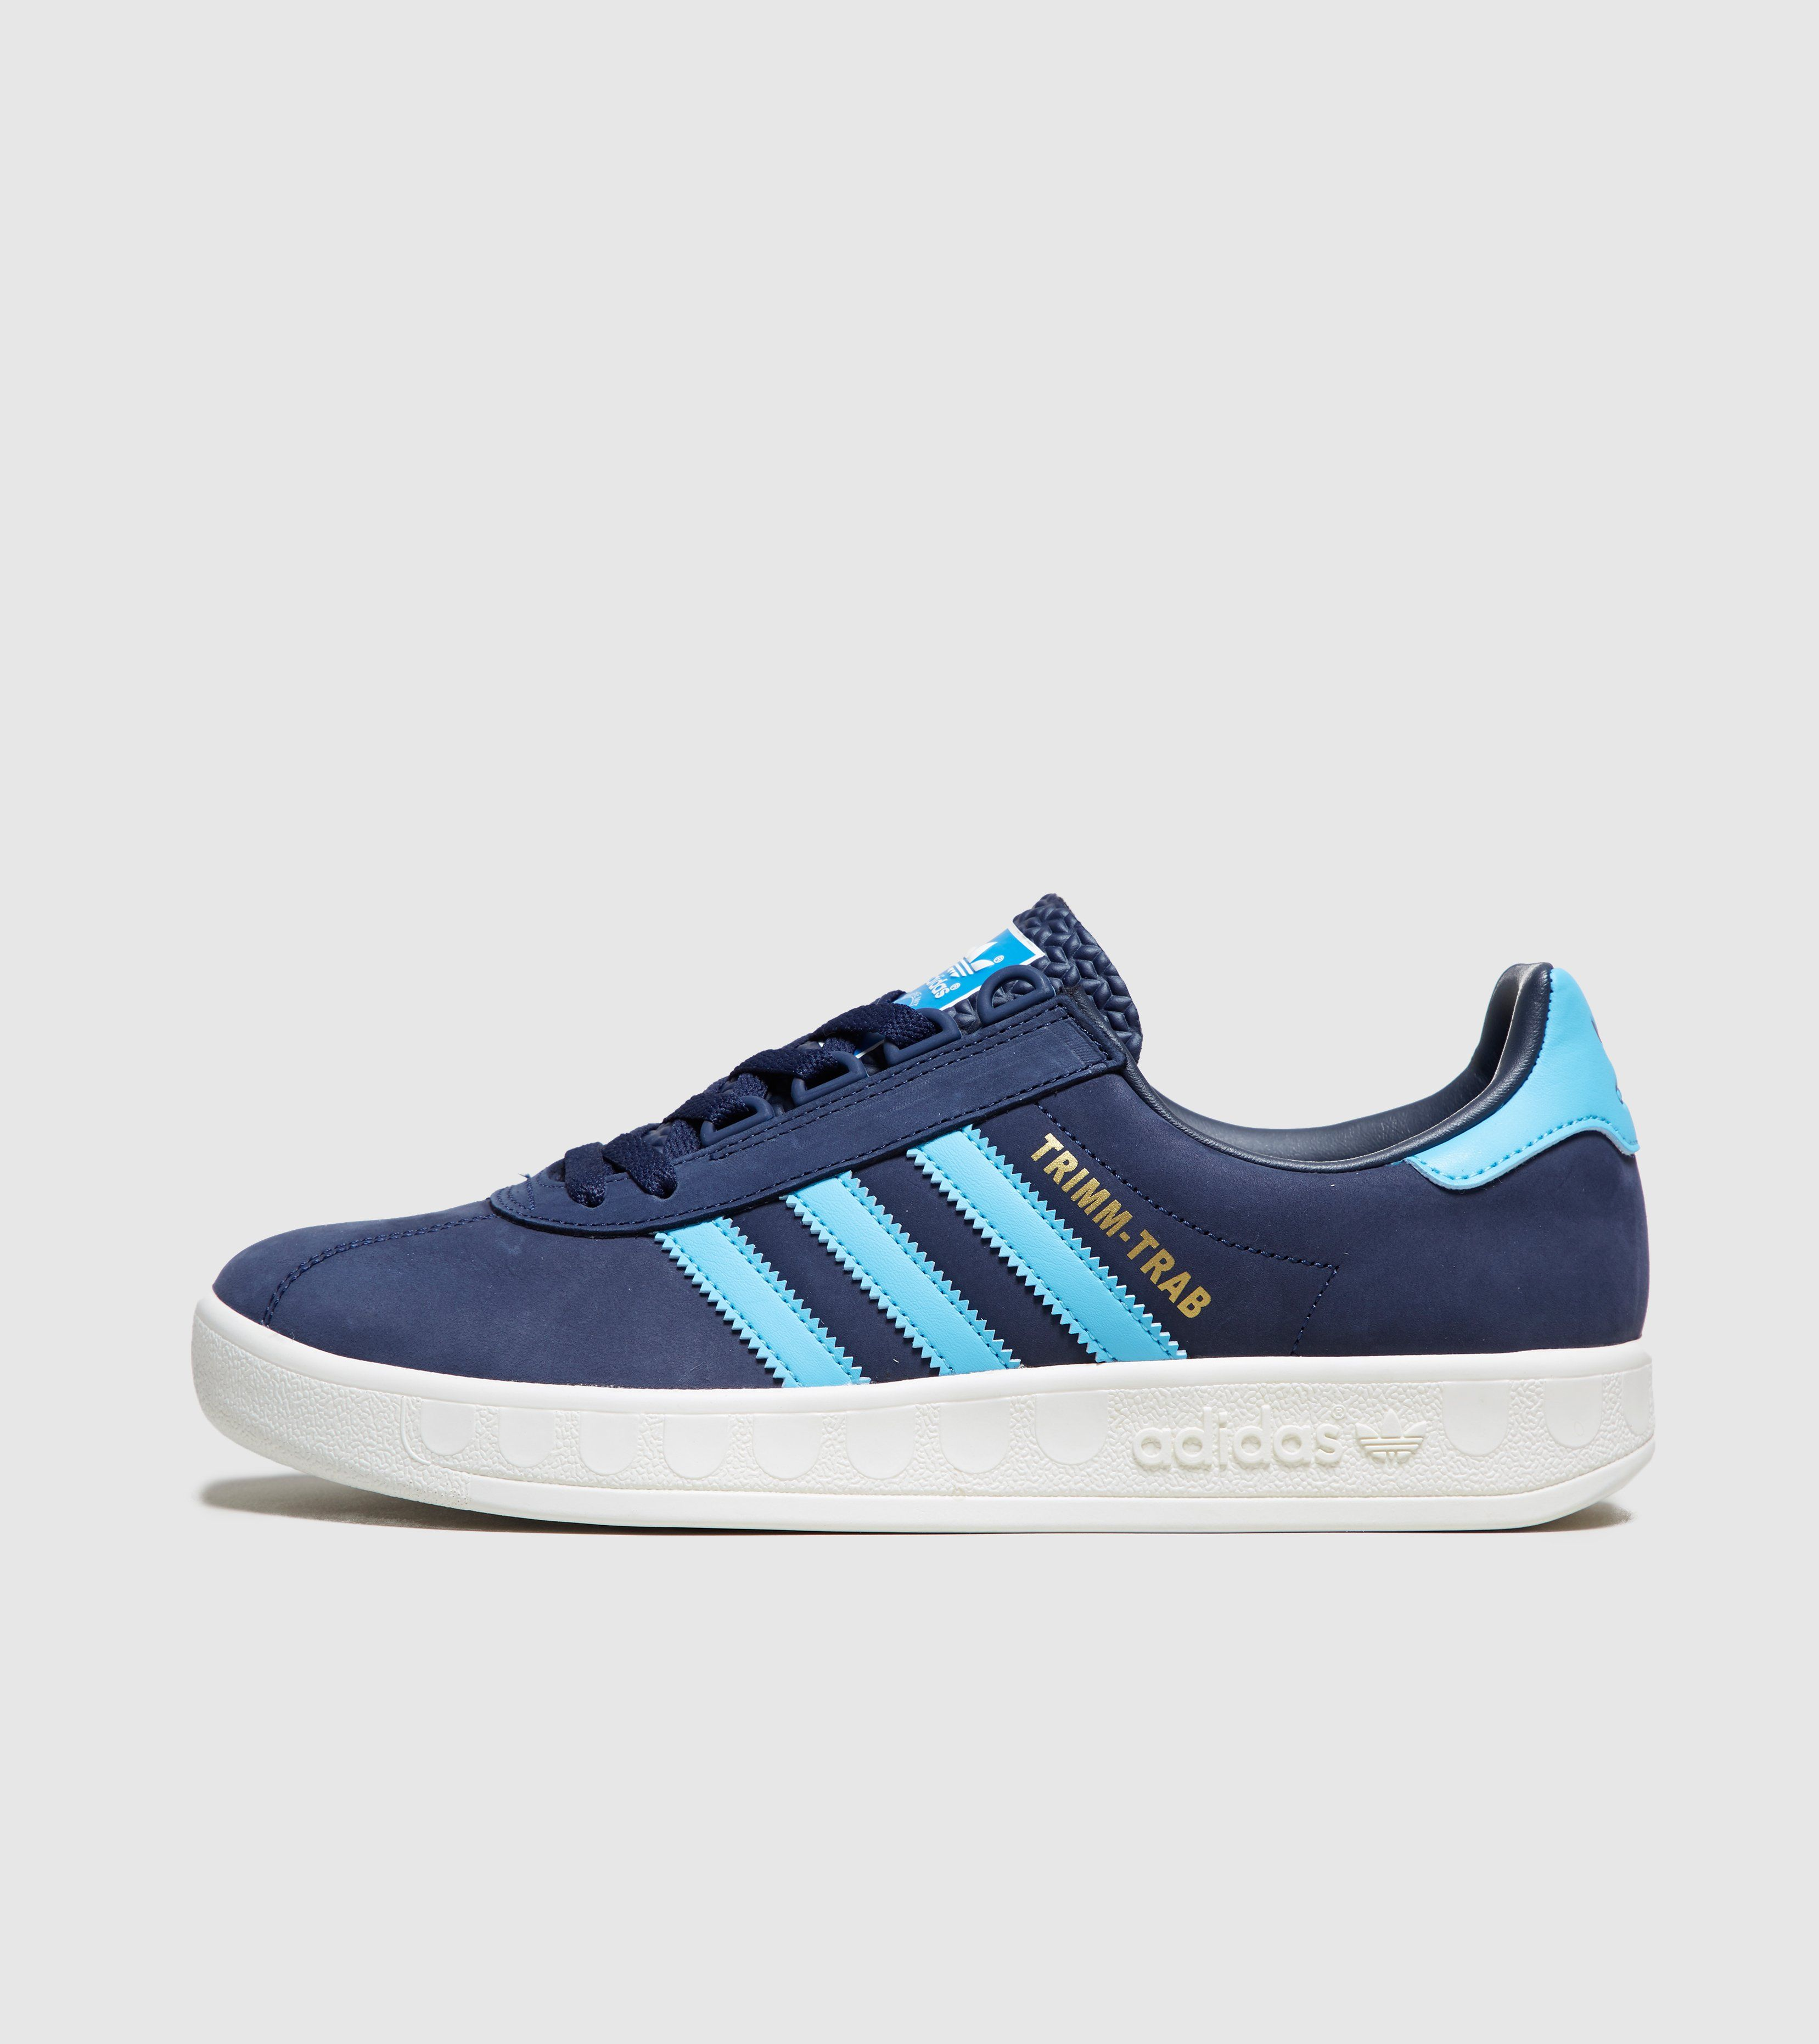 f1e0b7ac10b19 adidas Originals Trimm Trab 'Trimmy' - size? Exclusive | Size?